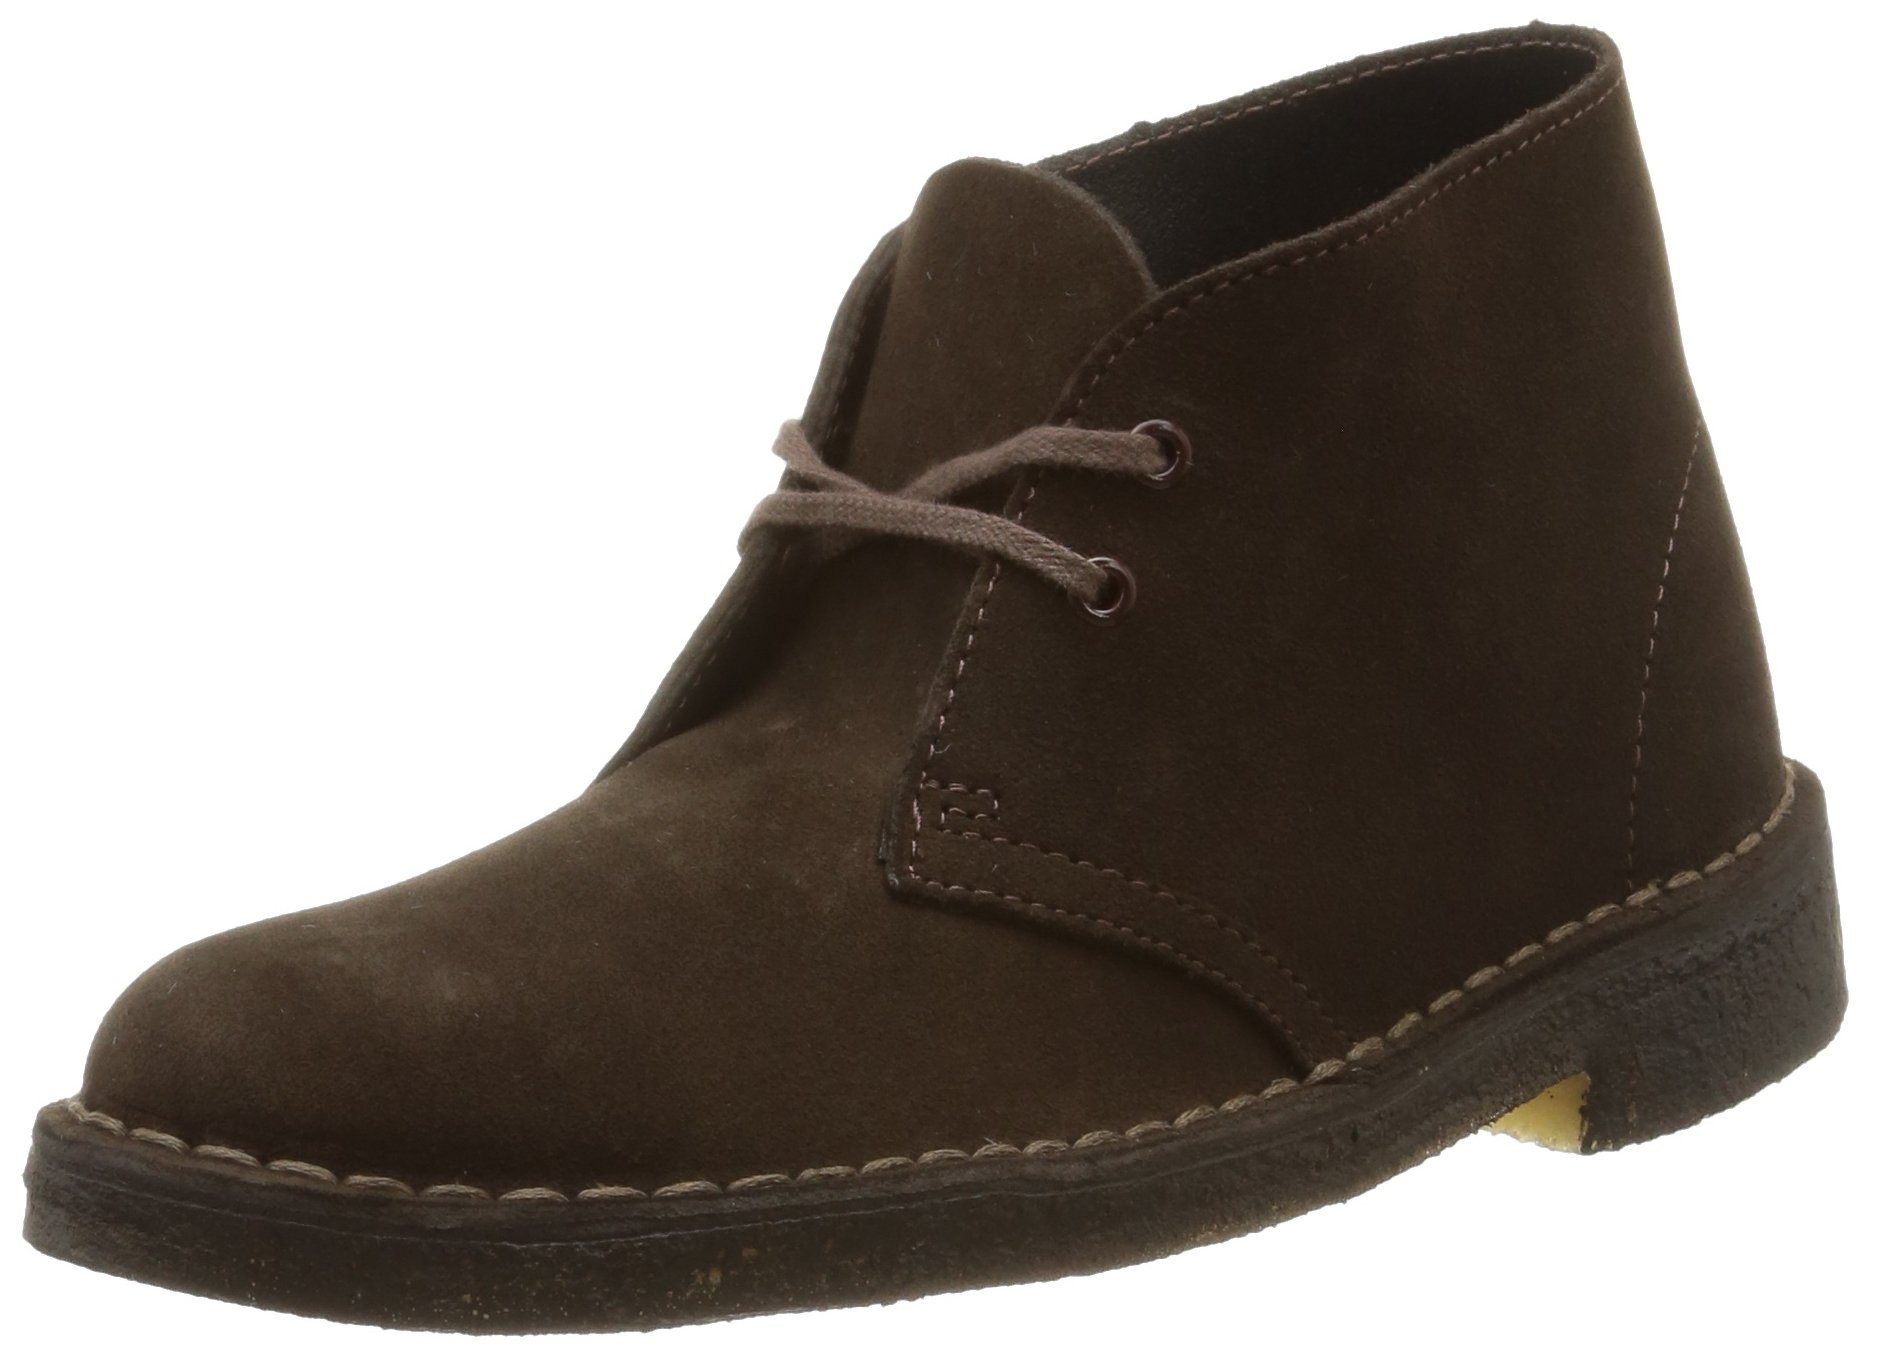 Clarks Desert Boot Women's Desert Boots Brown (brown Suede) 5.5 UK ...